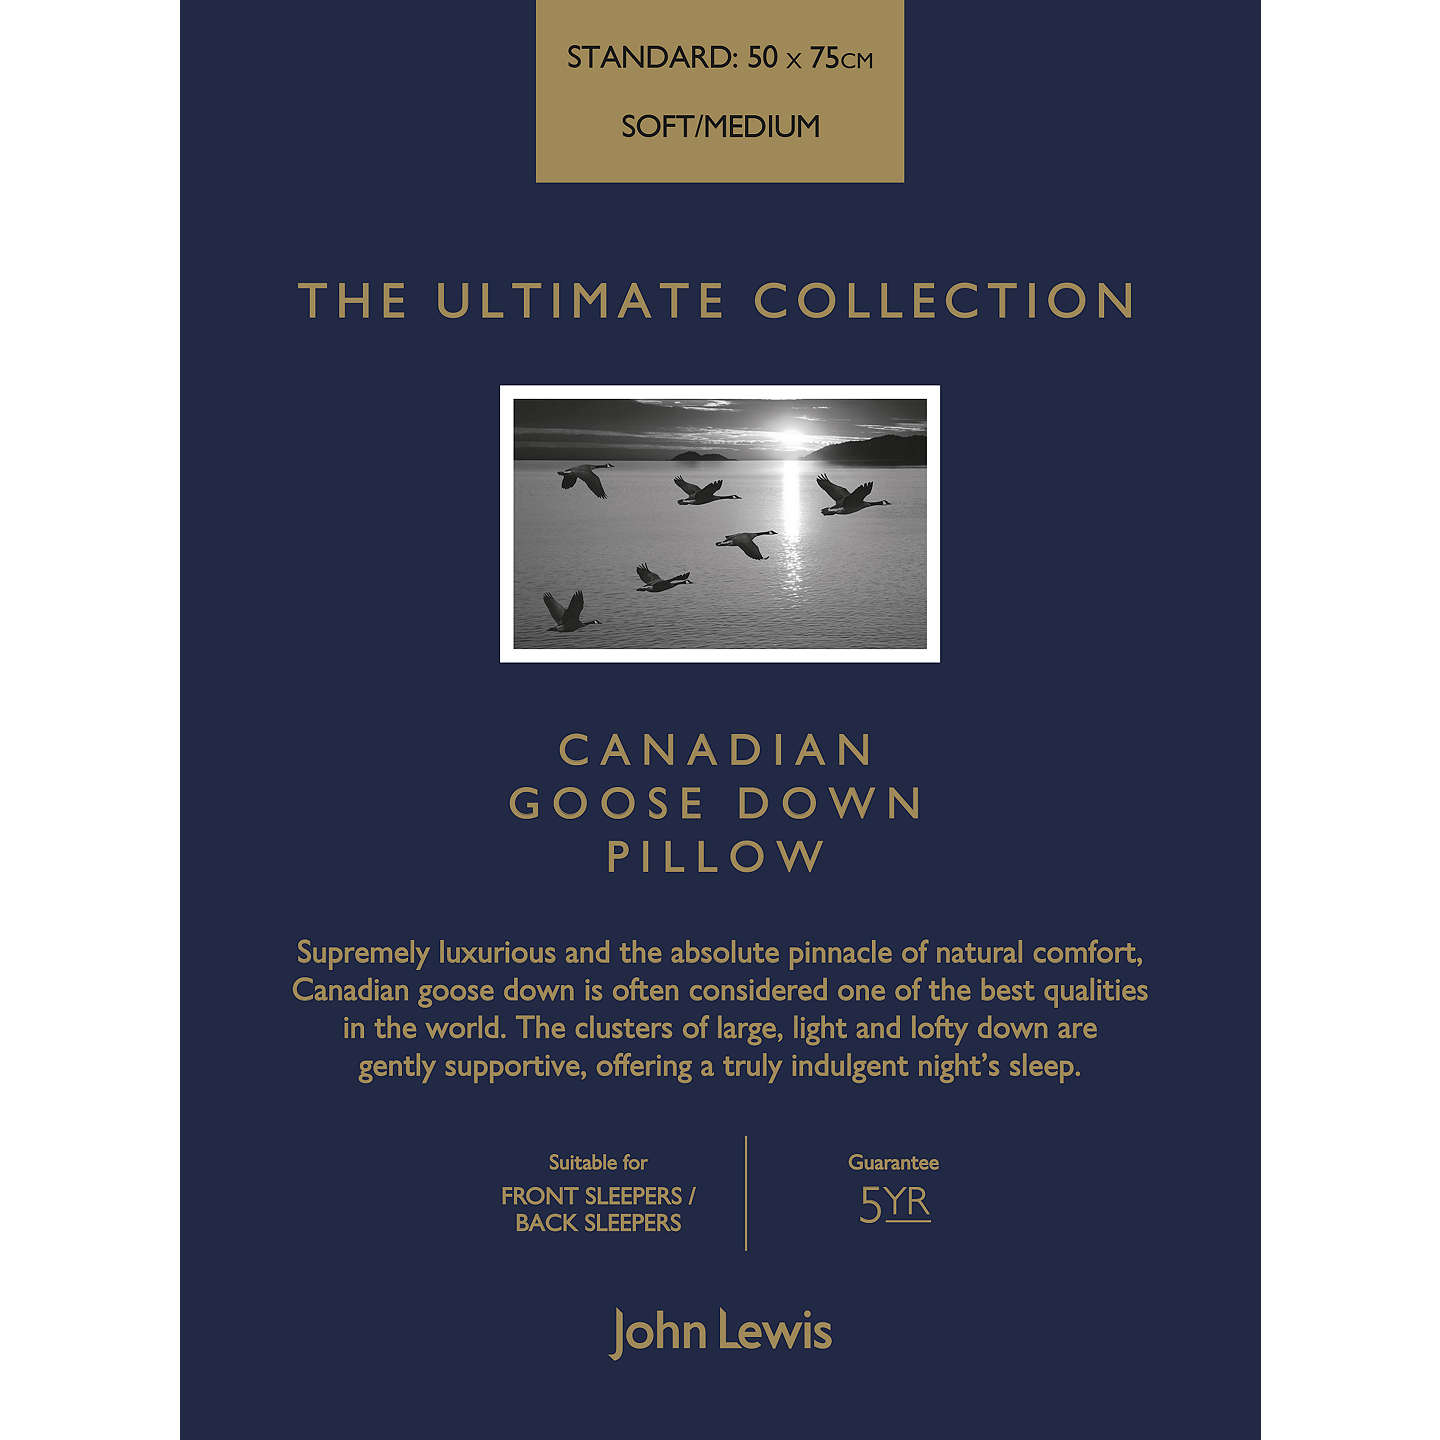 BuyJohn Lewis The Ultimate Collection Canadian Goose Down Standard Pillow, Soft/Medium Online at johnlewis.com